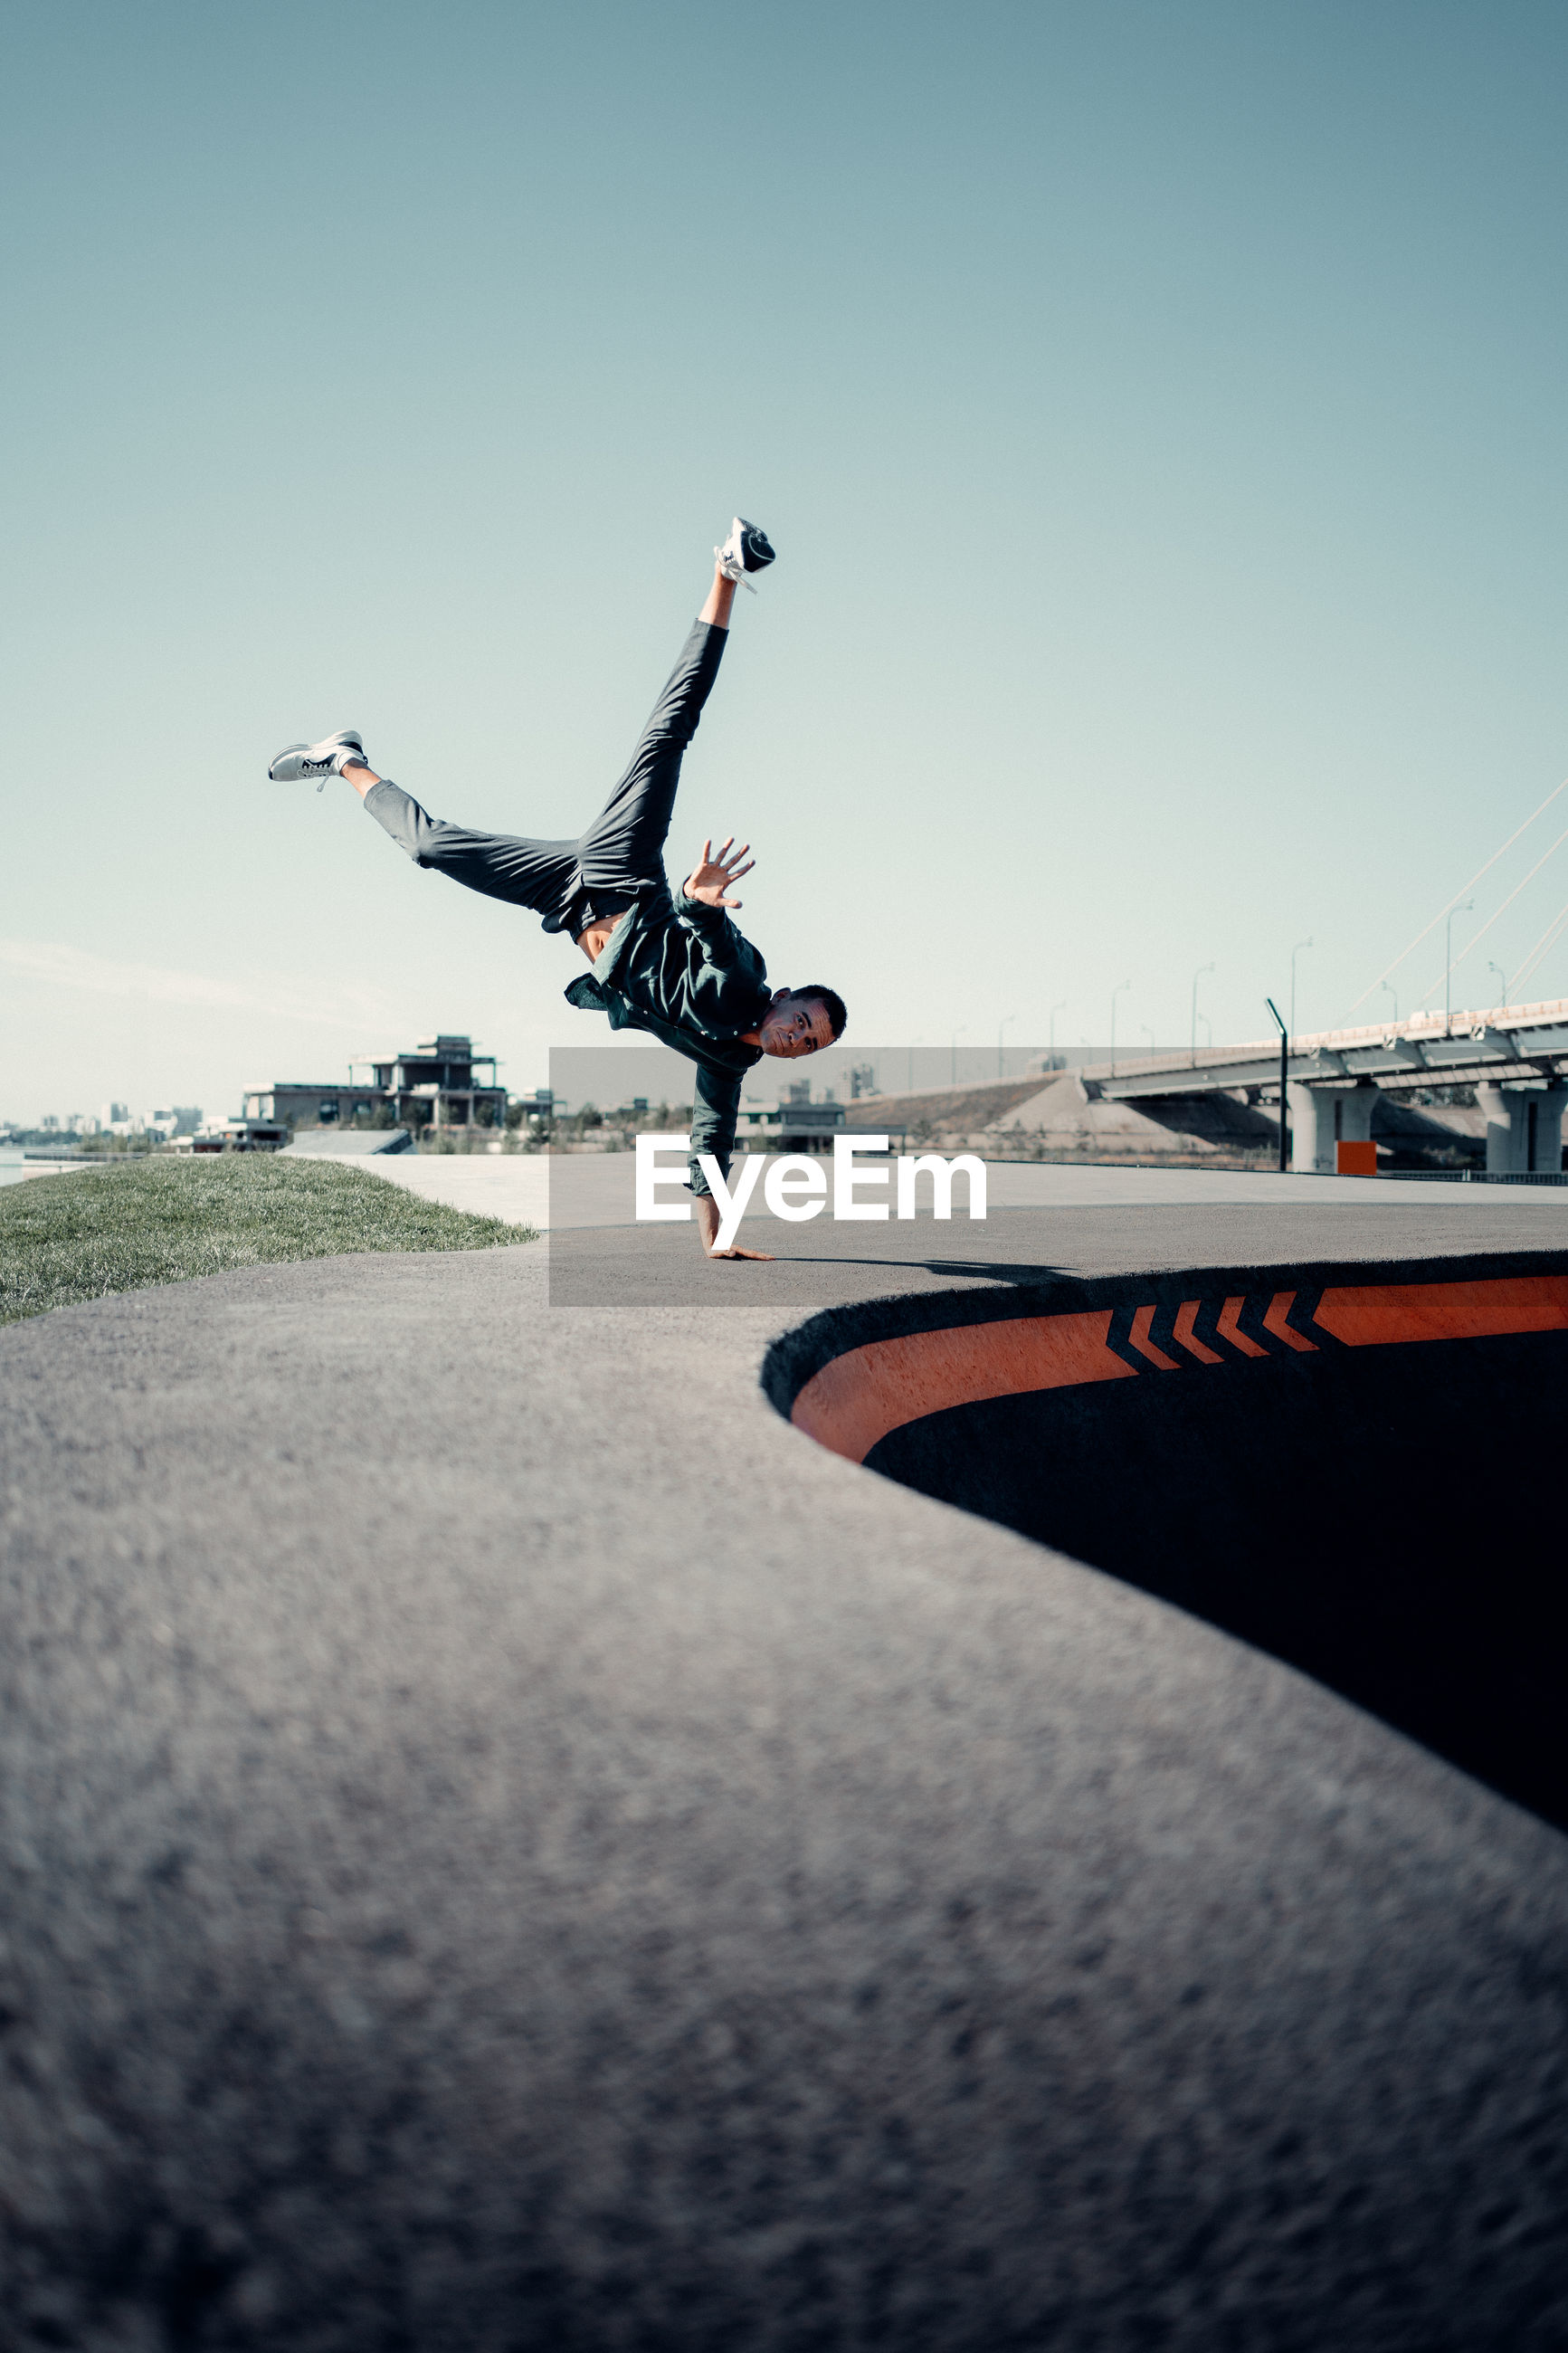 LOW ANGLE VIEW OF MAN JUMPING AT AIRPORT